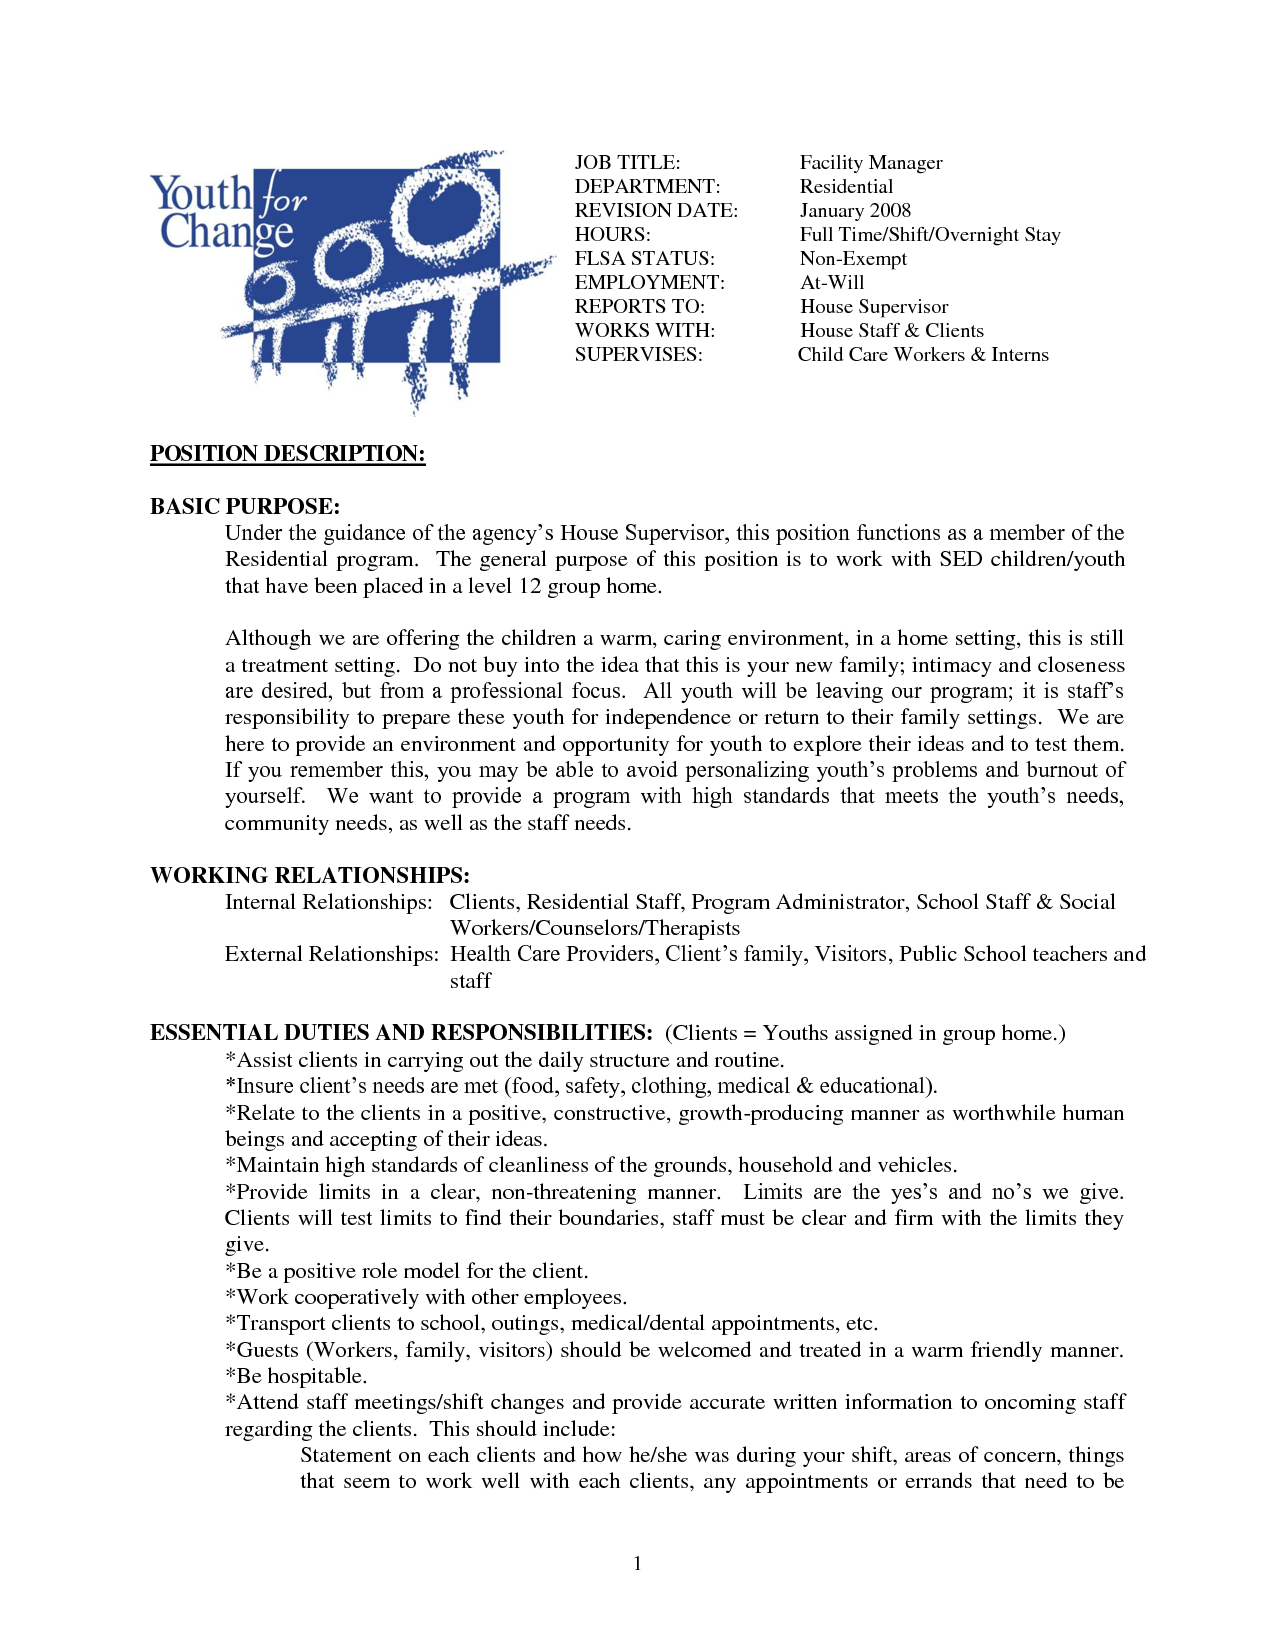 cleaning business resume and job description house cleraing for objective template regarding housekeeping